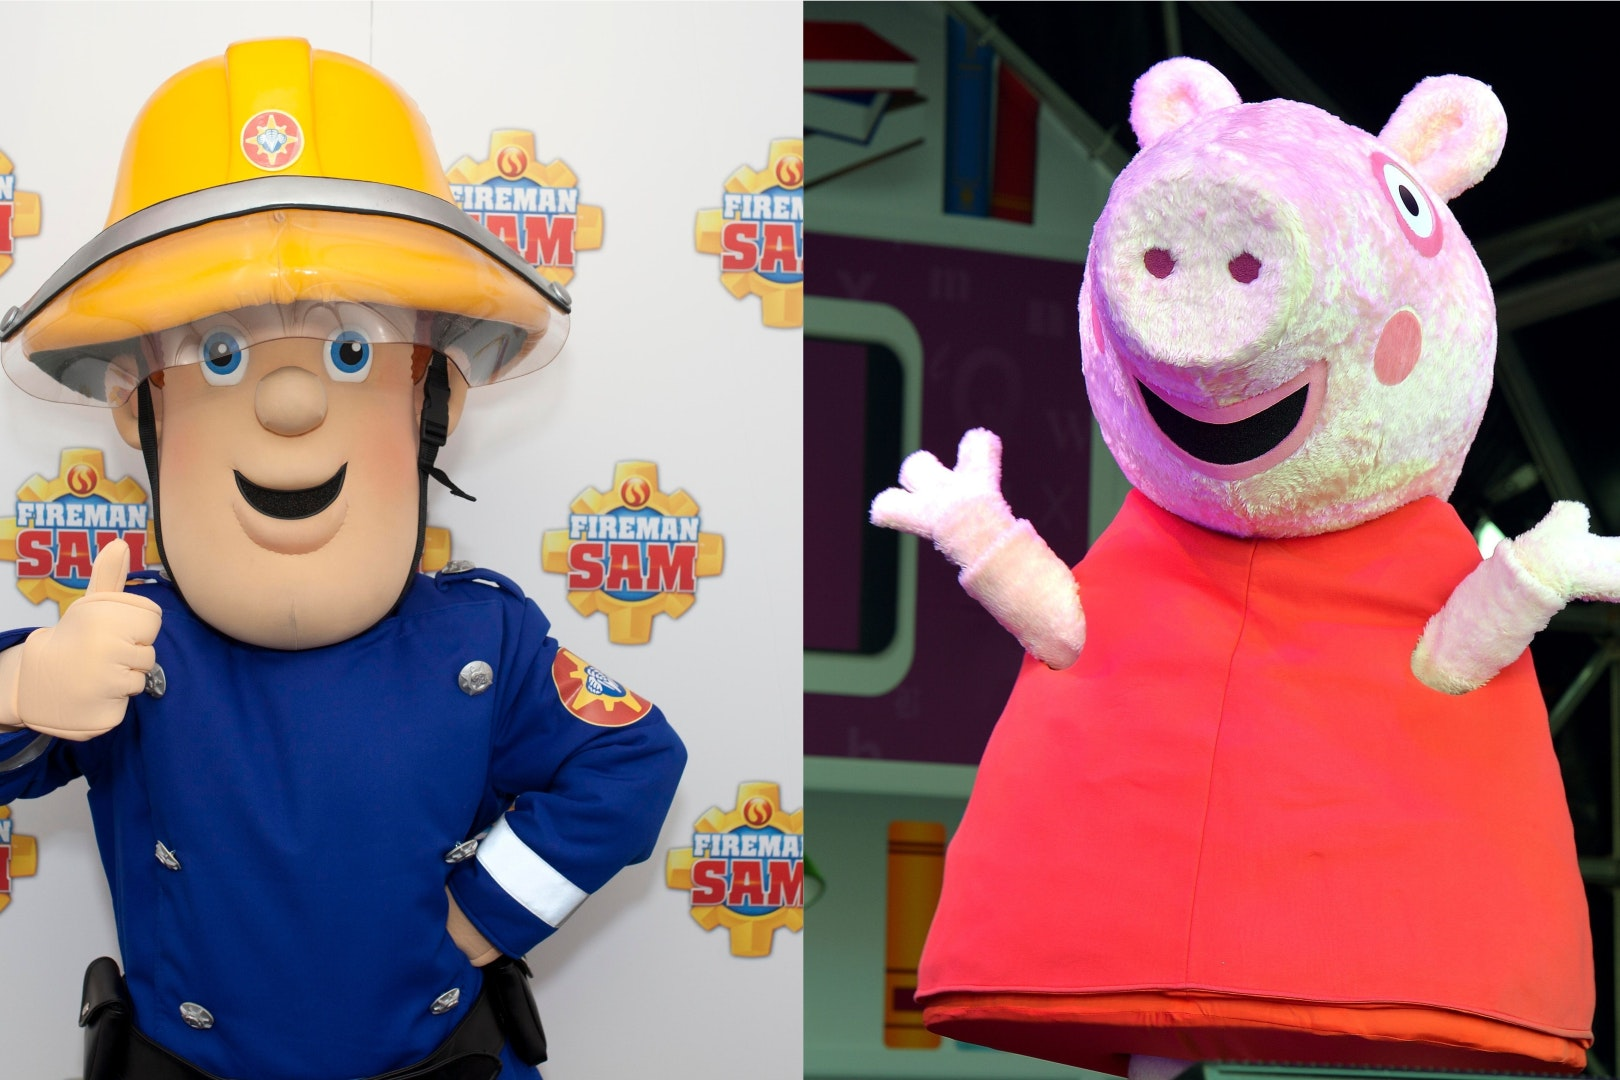 Fireman Sam and Peppa Pig